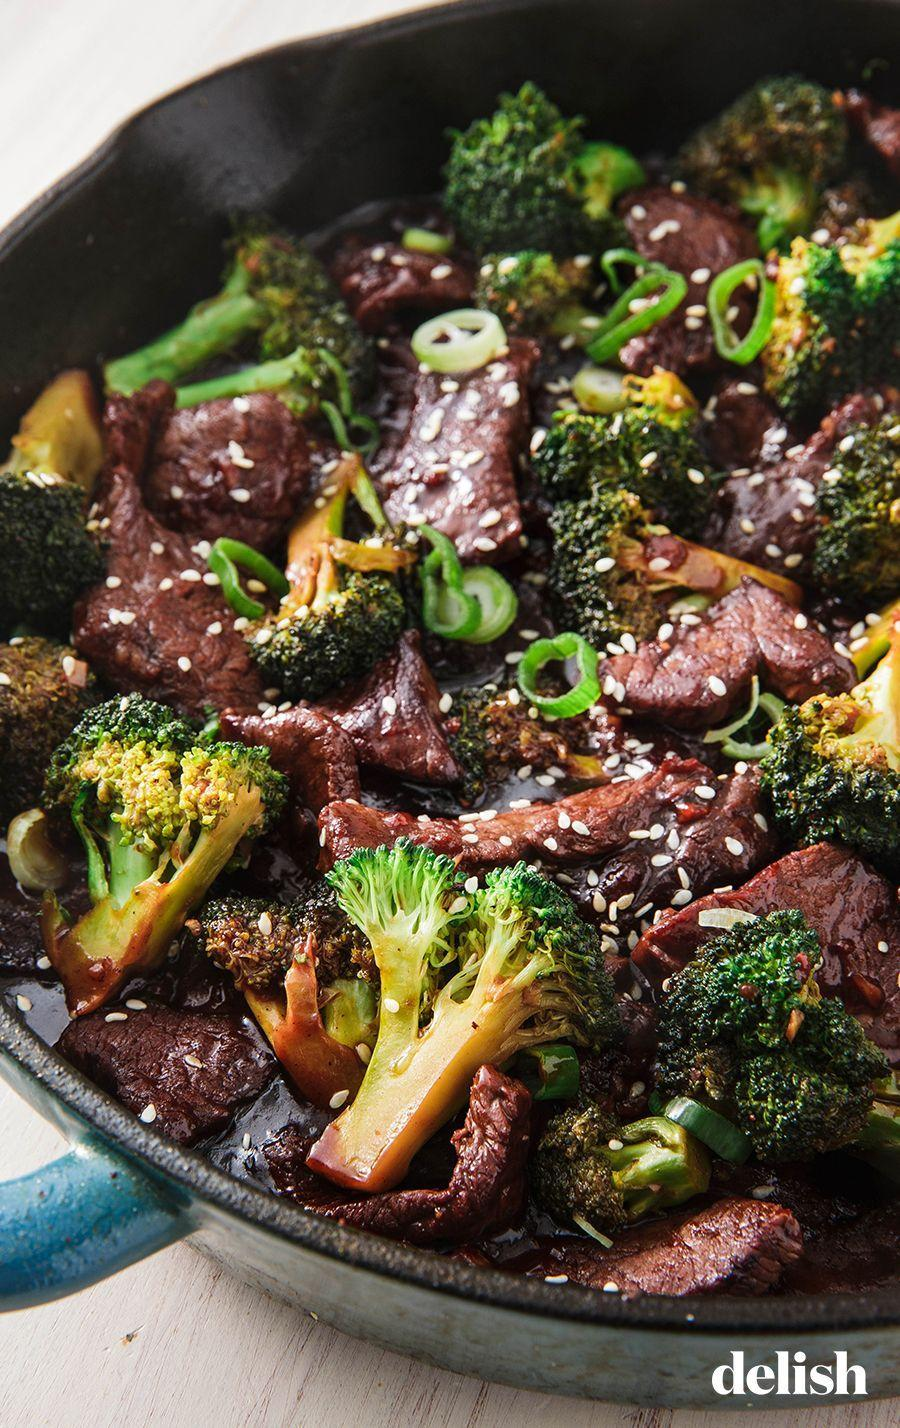 """<p>We like sirloin because it's budget-friendly. Flank or skirt steak work too! </p><p>Get the recipe from <a href=""""https://www.delish.com/cooking/recipe-ideas/a24489879/beef-and-broccoli-recipe/"""" rel=""""nofollow noopener"""" target=""""_blank"""" data-ylk=""""slk:Delish"""" class=""""link rapid-noclick-resp"""">Delish</a>.<br></p>"""